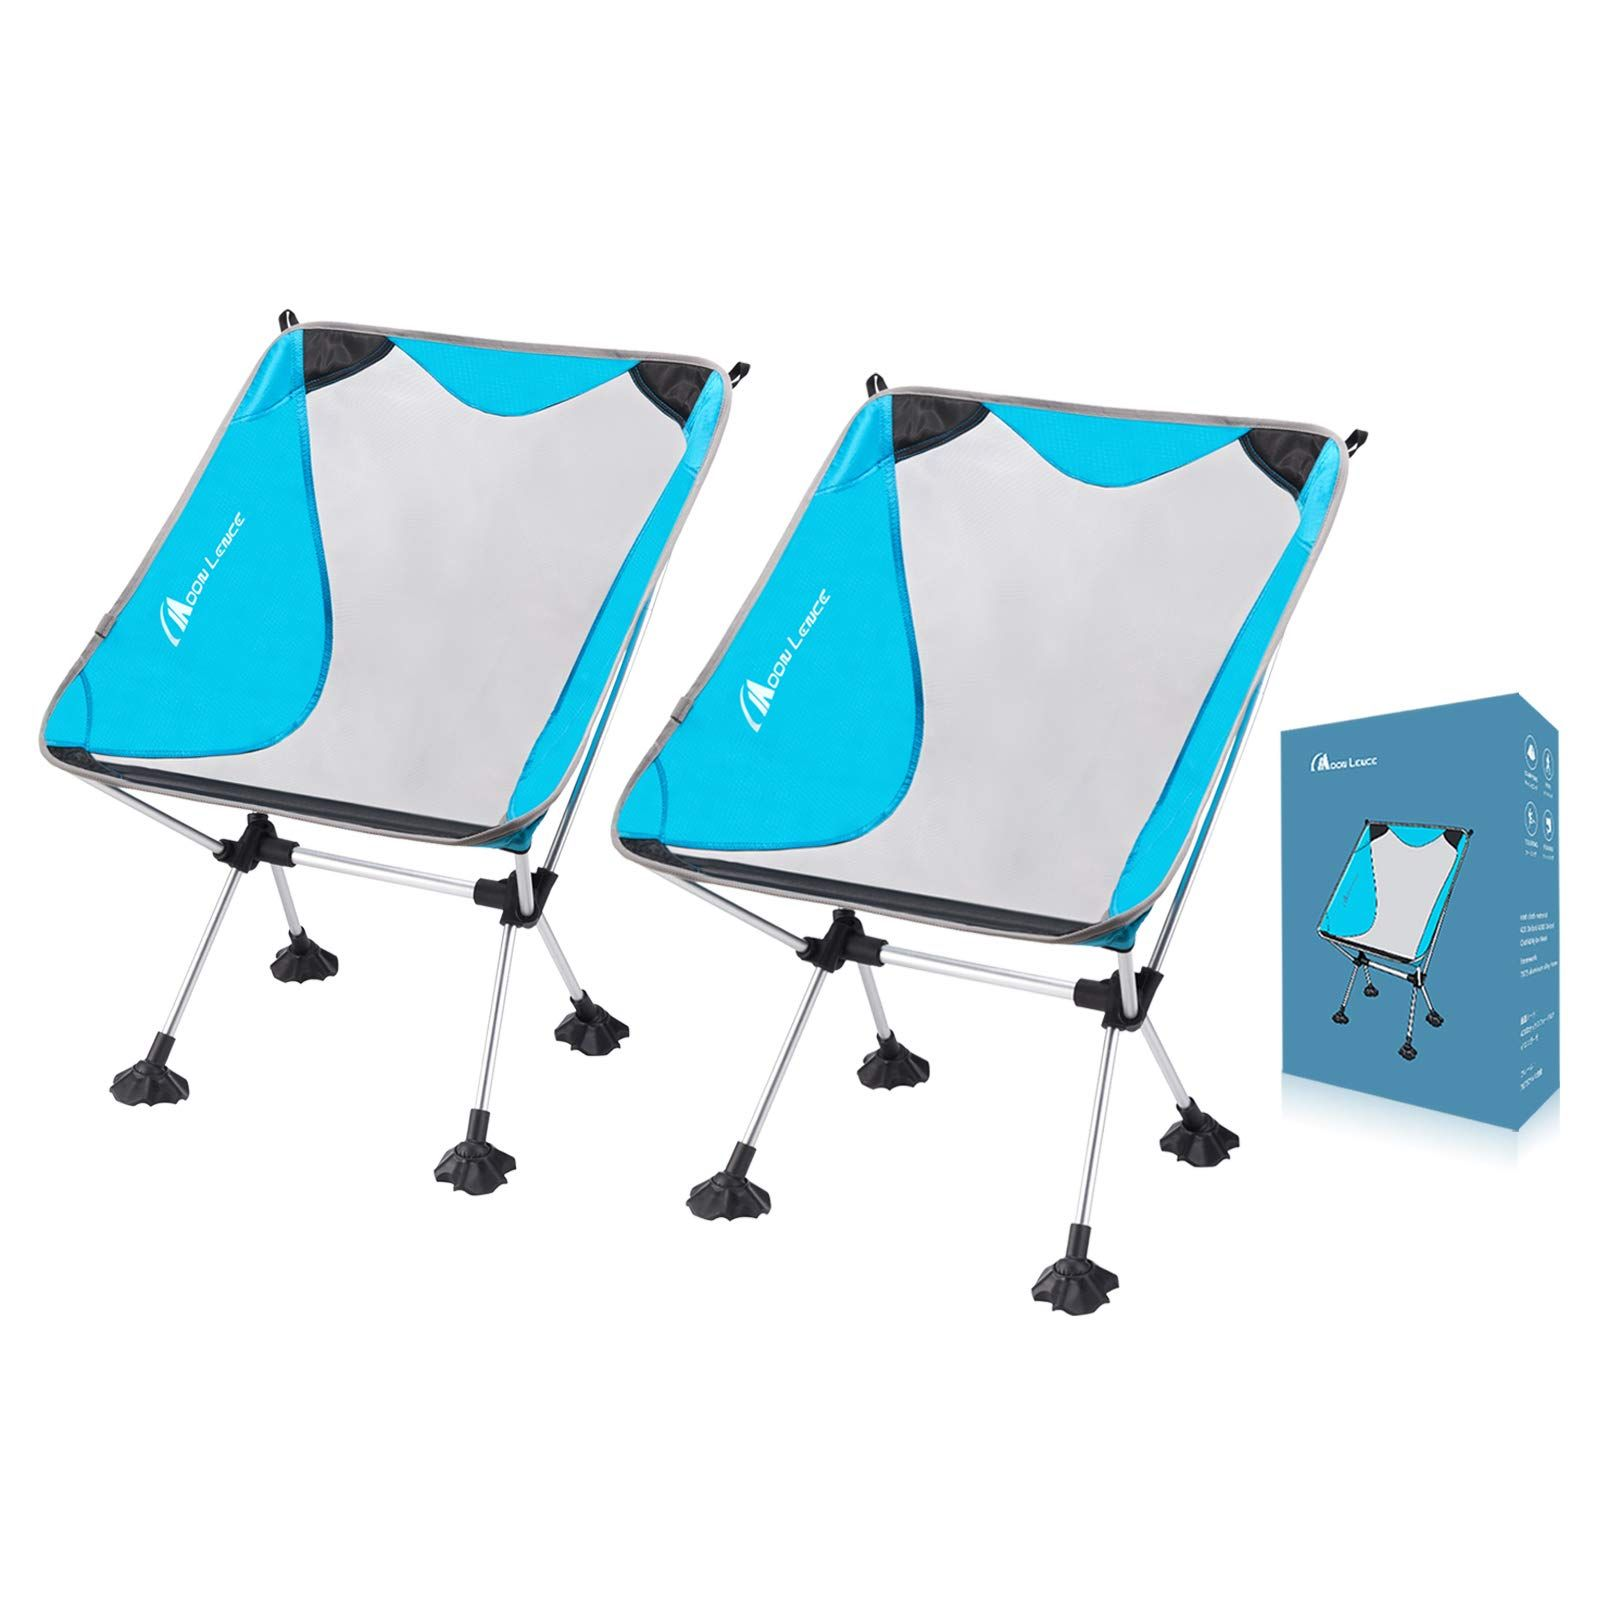 MOON LENCE Outdoor Ultralight Portable Folding Chairs with